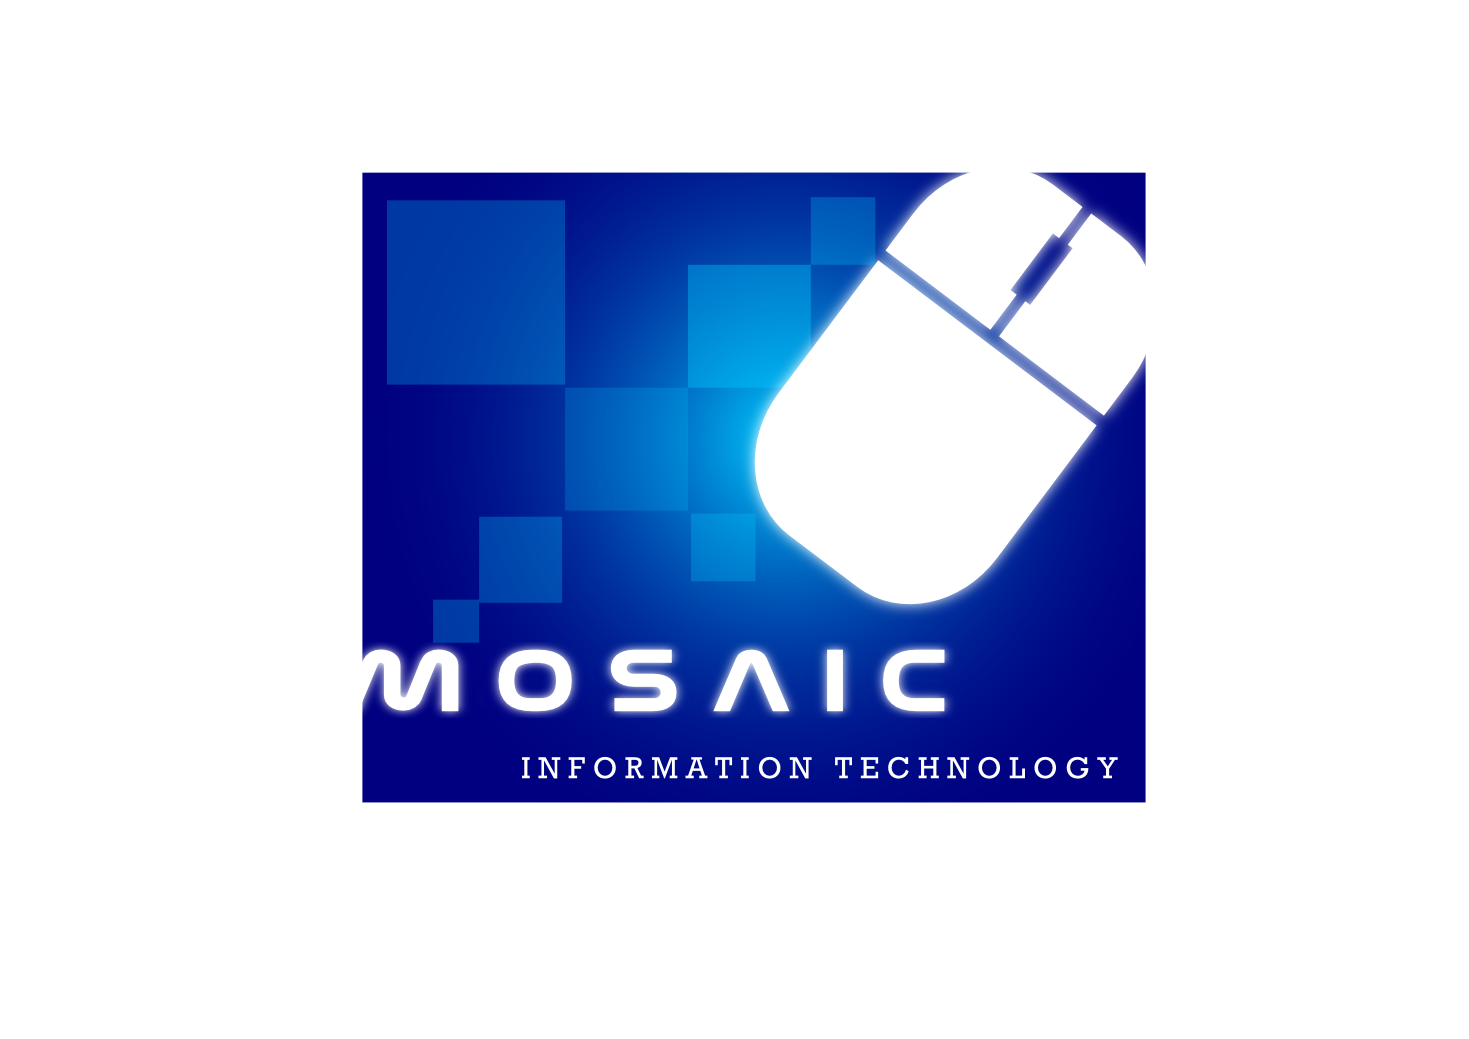 Logo Design by whoosef - Entry No. 47 in the Logo Design Contest Mosaic Information Technology Logo Design.